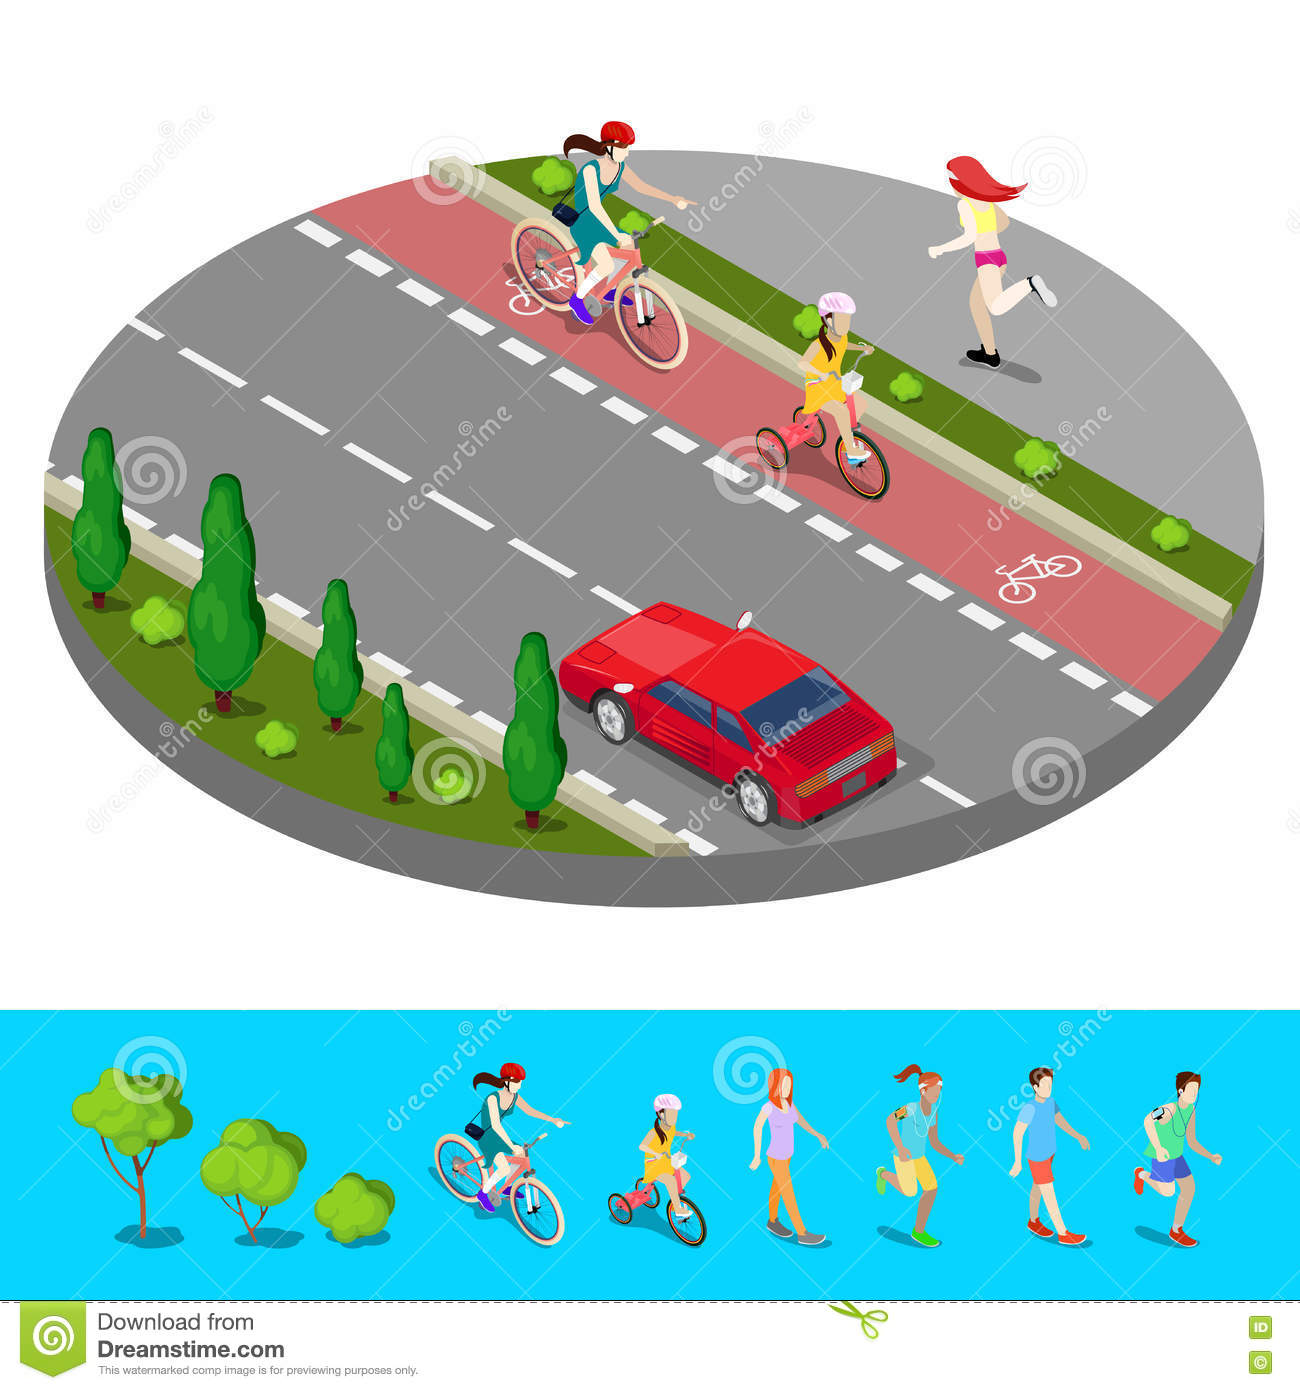 Isometric City. Bike Path with Bicyclist. Footpath with Running Woman